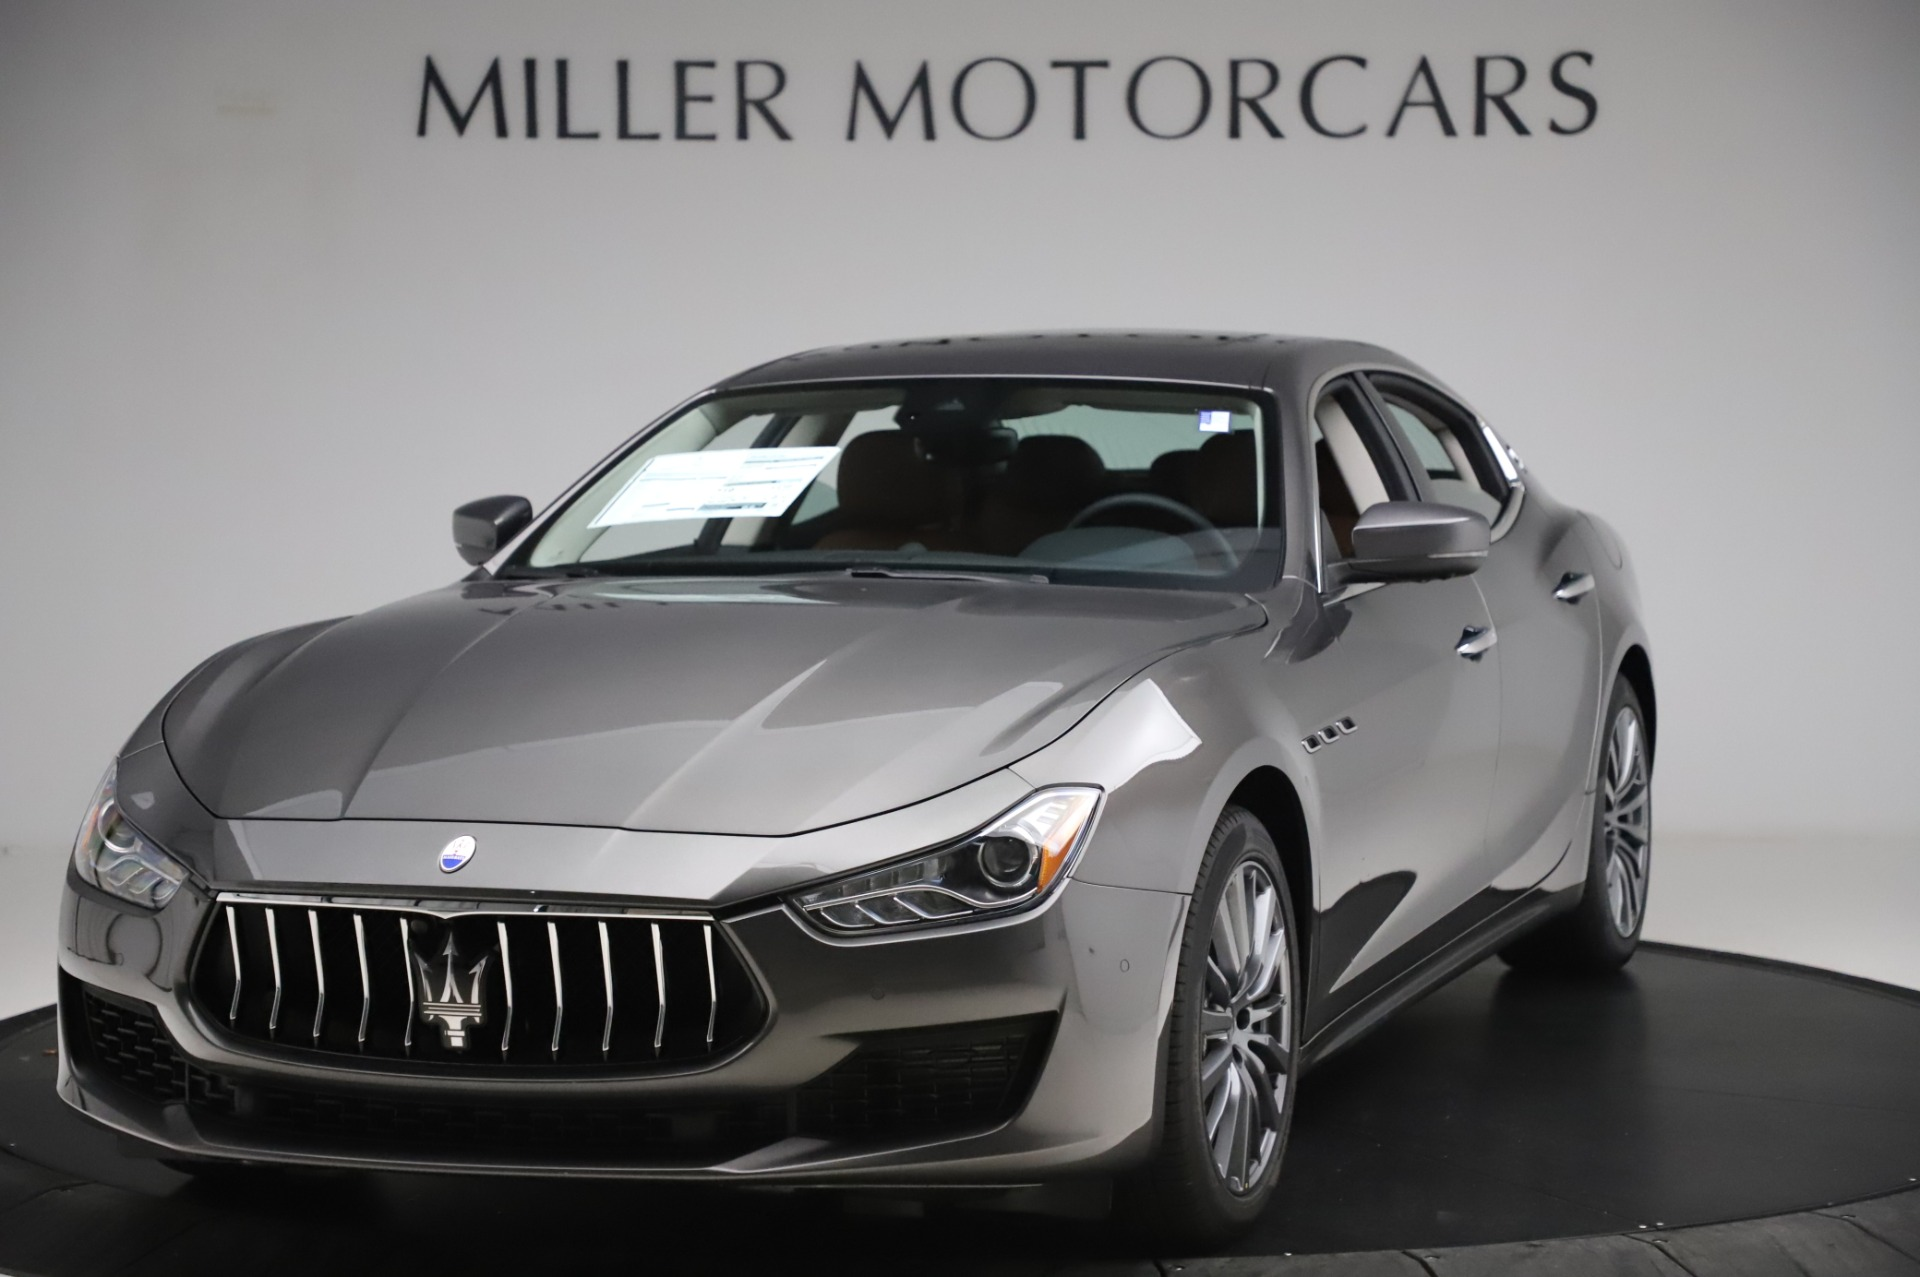 New 2020 Maserati Ghibli S Q4 for sale $83,785 at Bentley Greenwich in Greenwich CT 06830 1